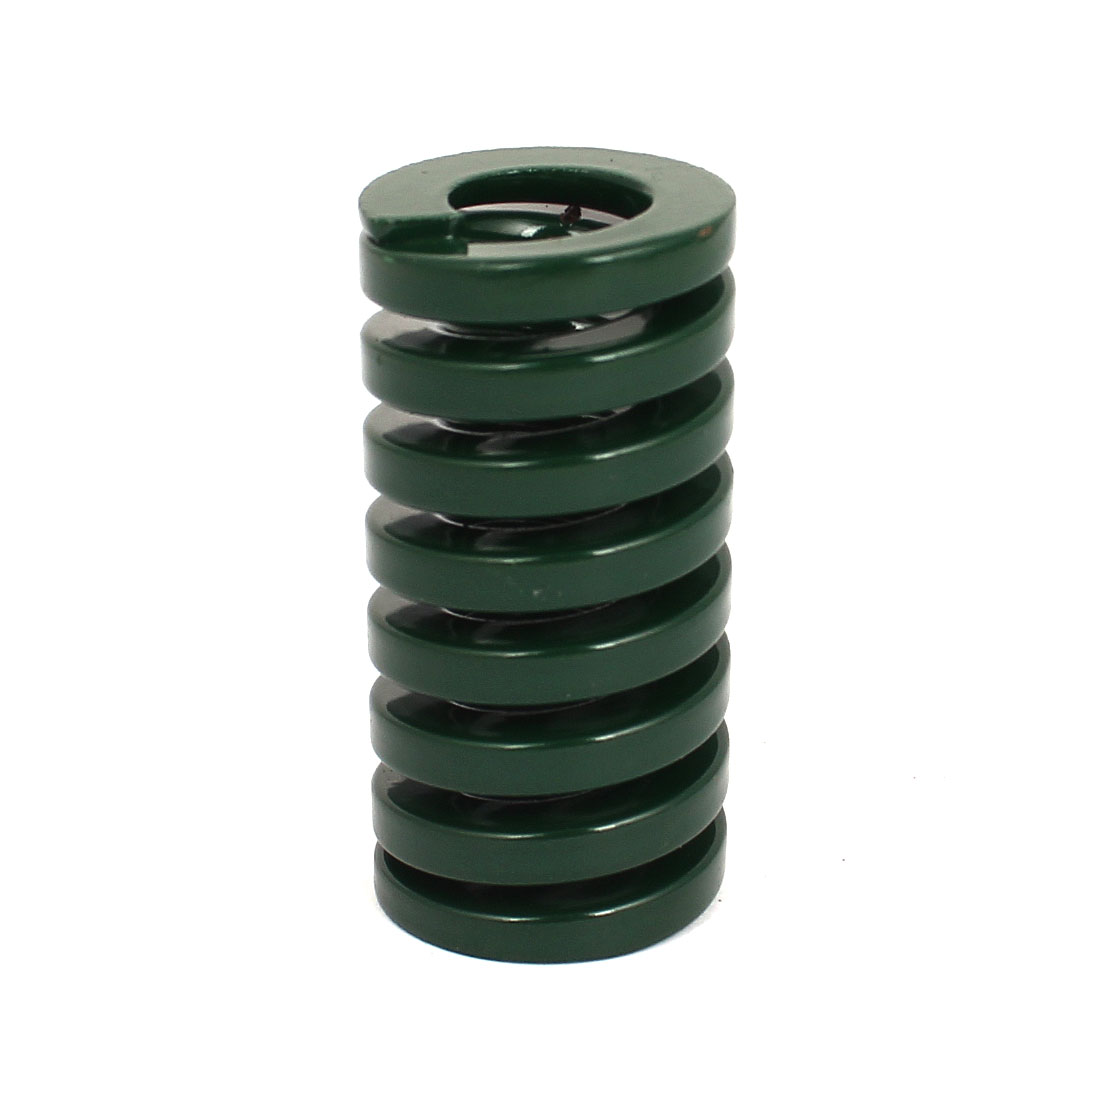 25mm OD 50mm Long Heavy Load Coil Stamping Compression Mold Die Spring Green